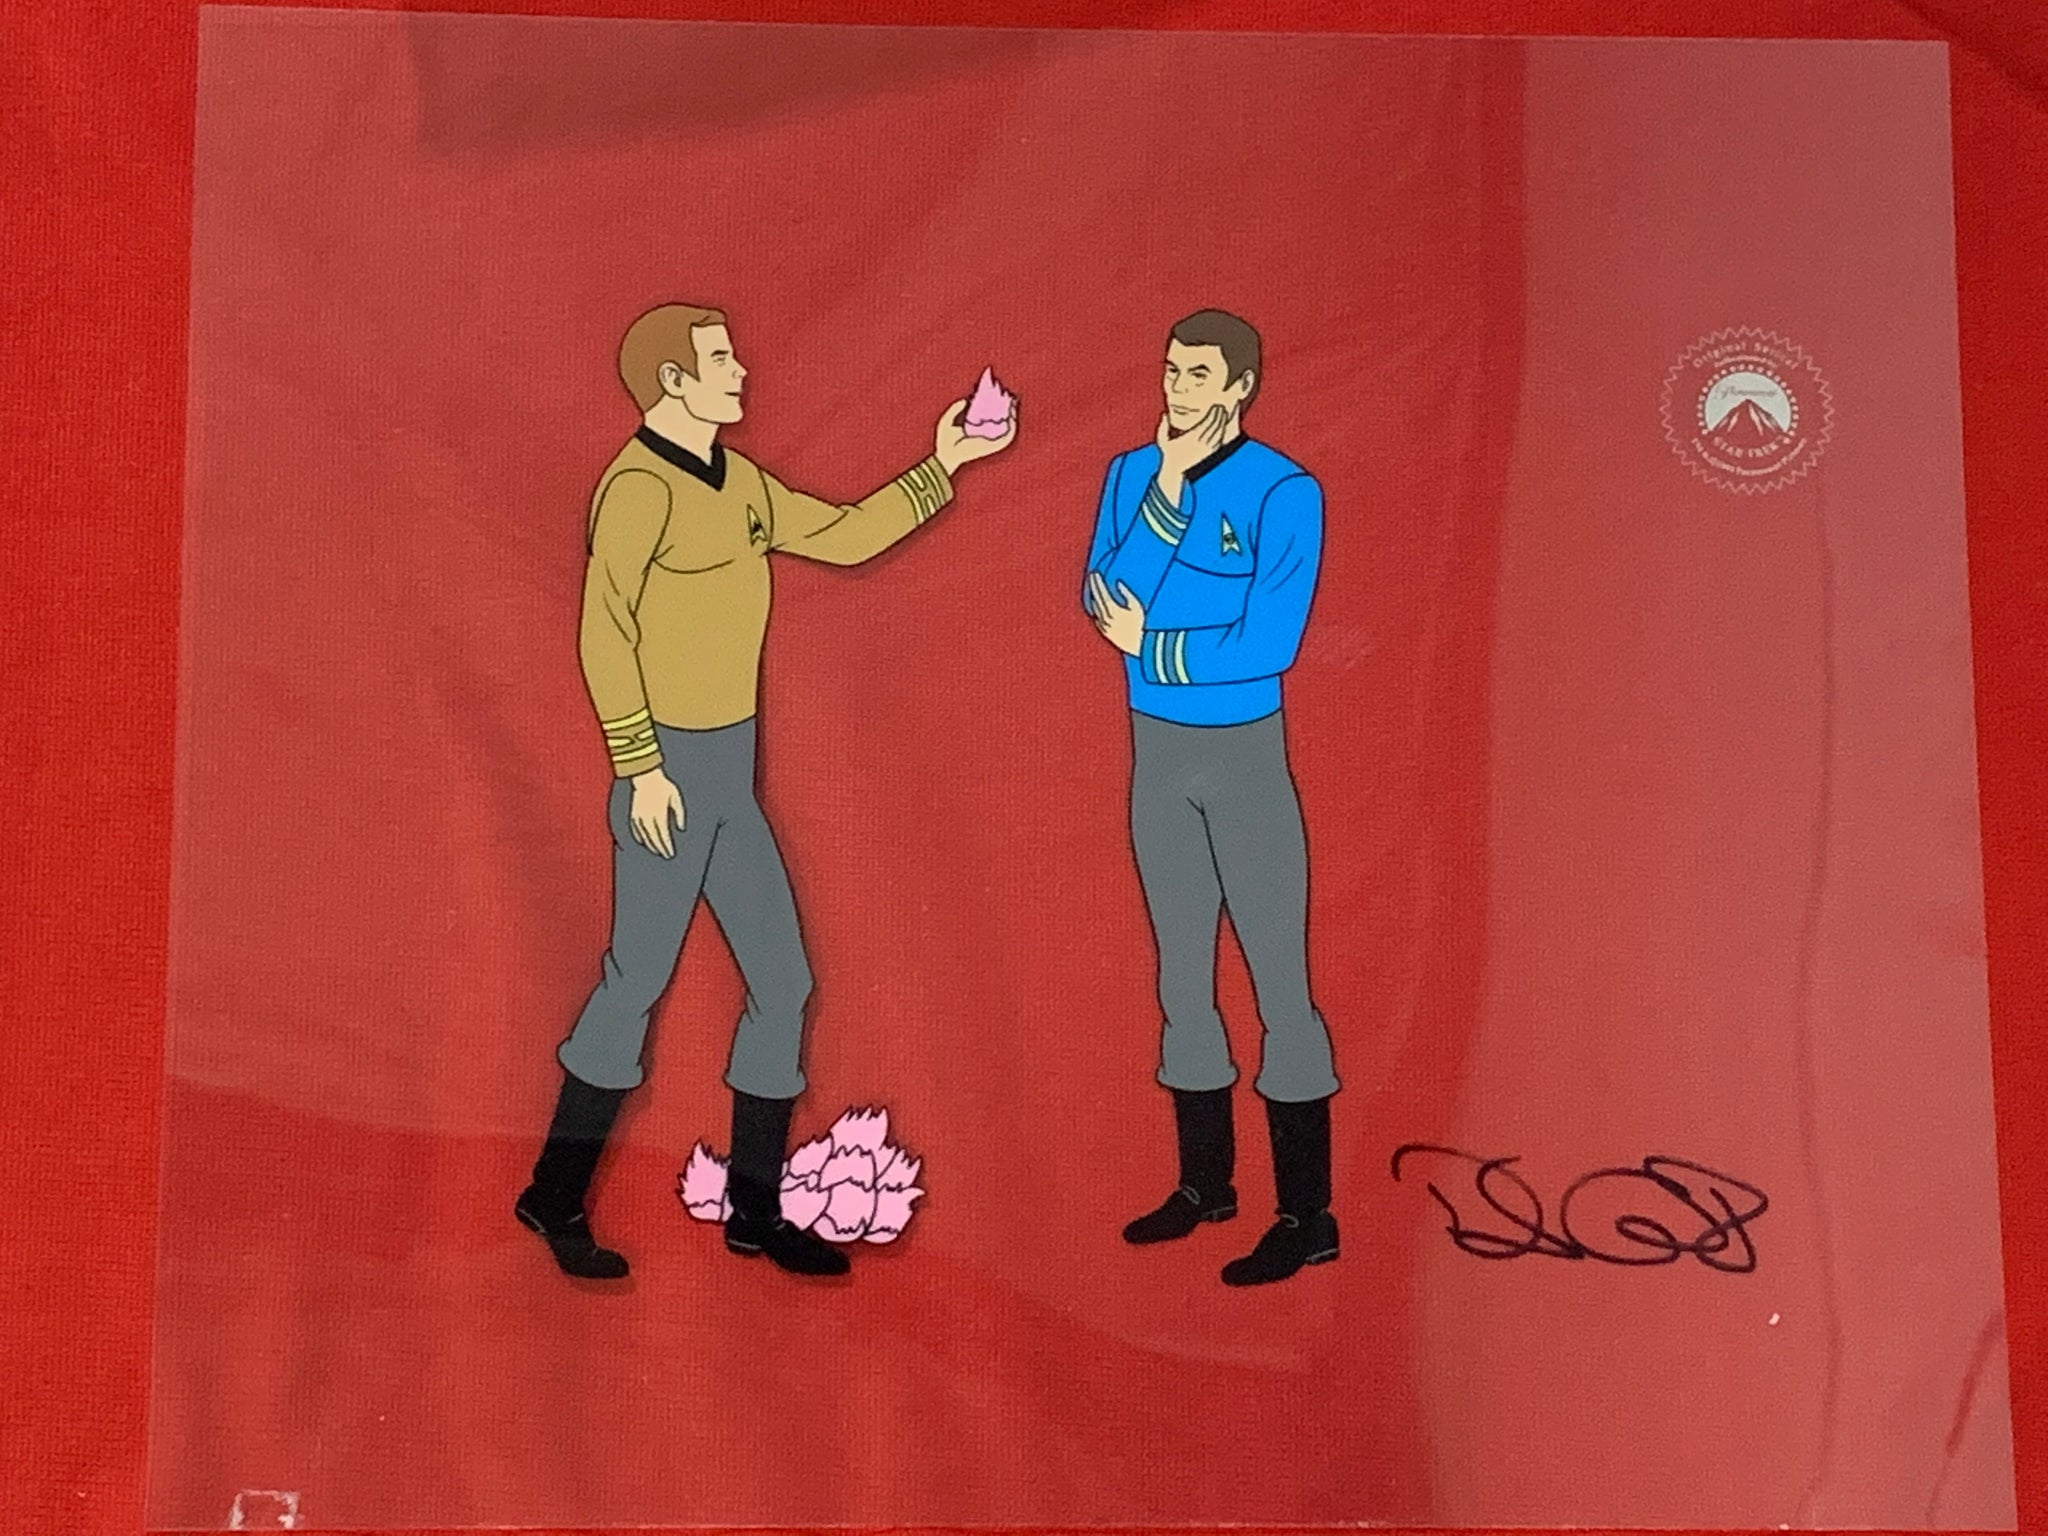 Star Trek sericel signed by David Gerrold 1 EX0943 - Animation Legends